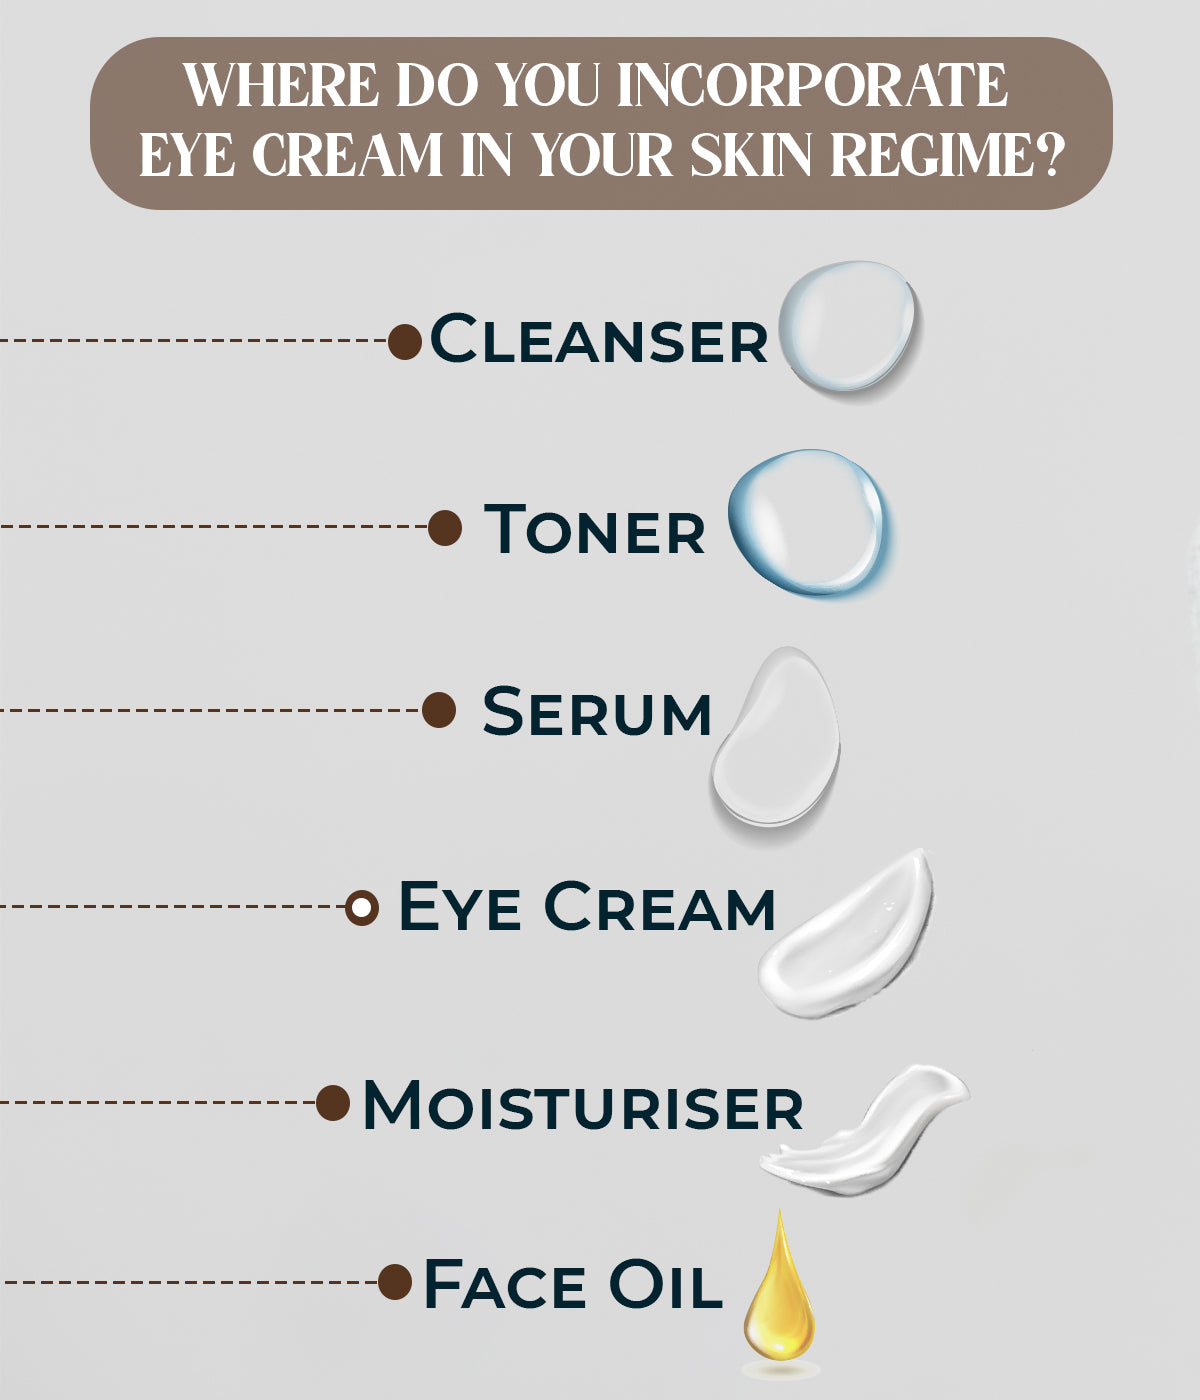 This is an image of where eye cream must be incorporated in your regime